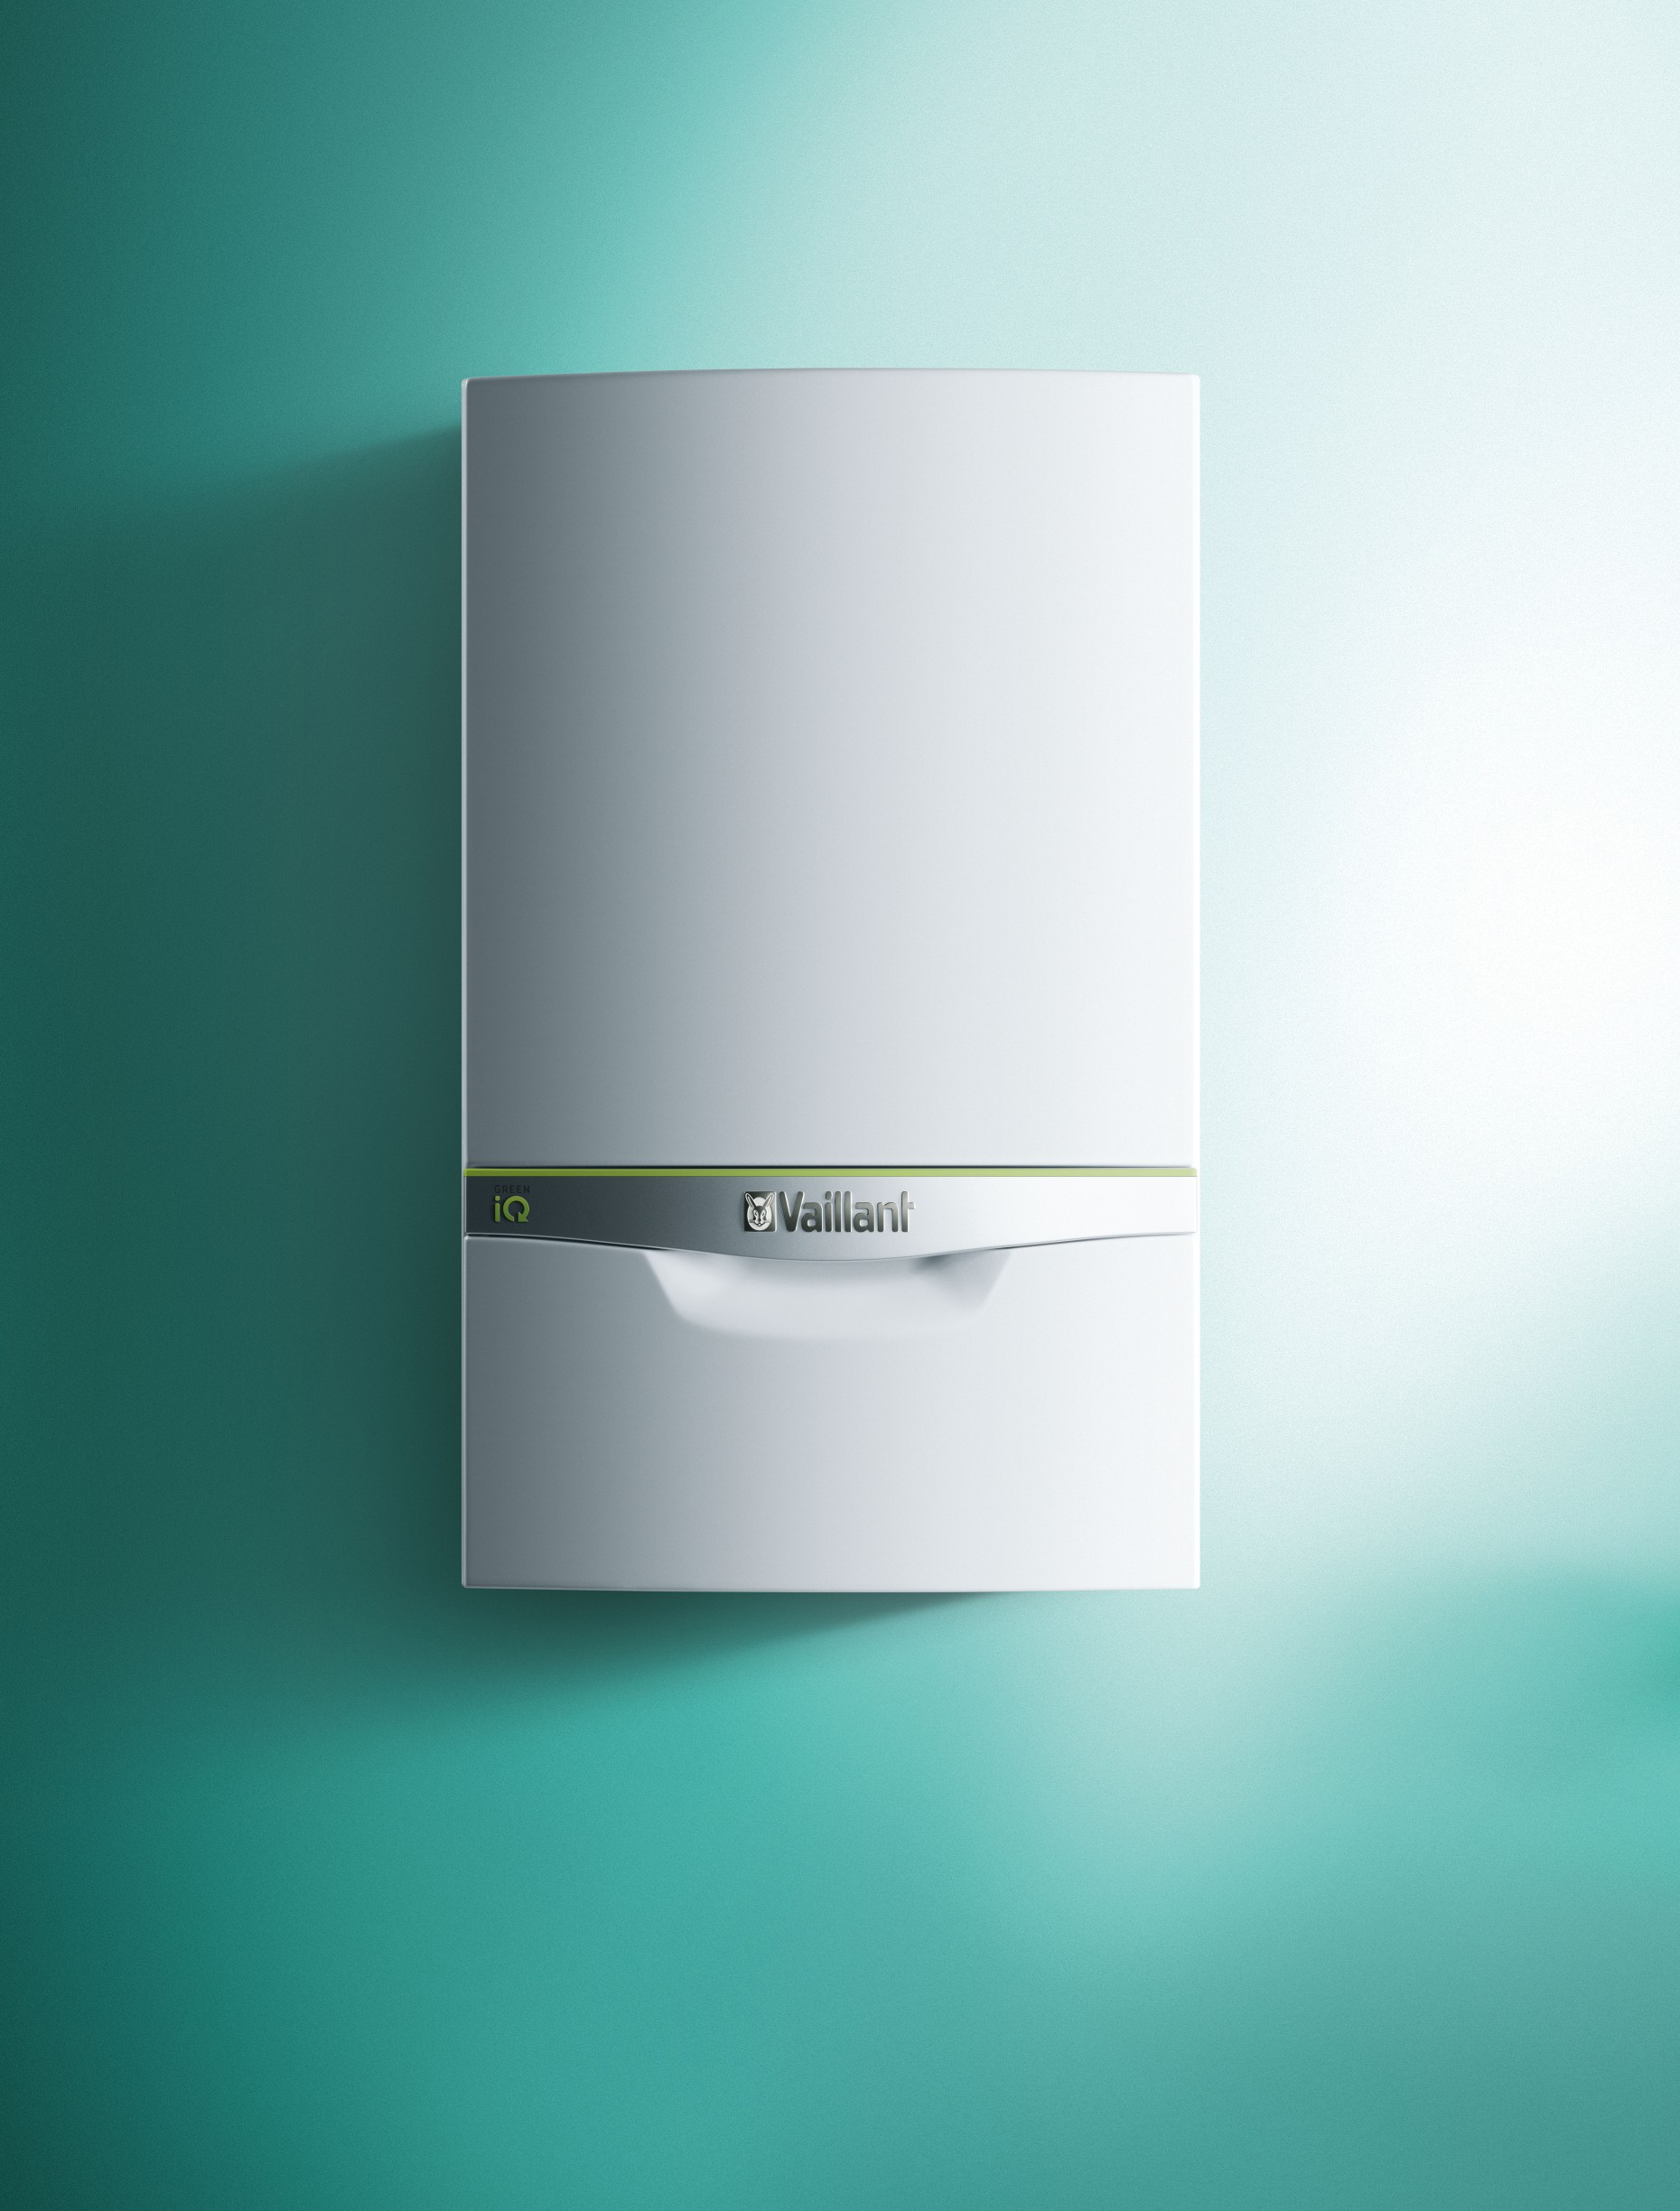 Vaillant VU 246/5-7 ecoTEC exclusive